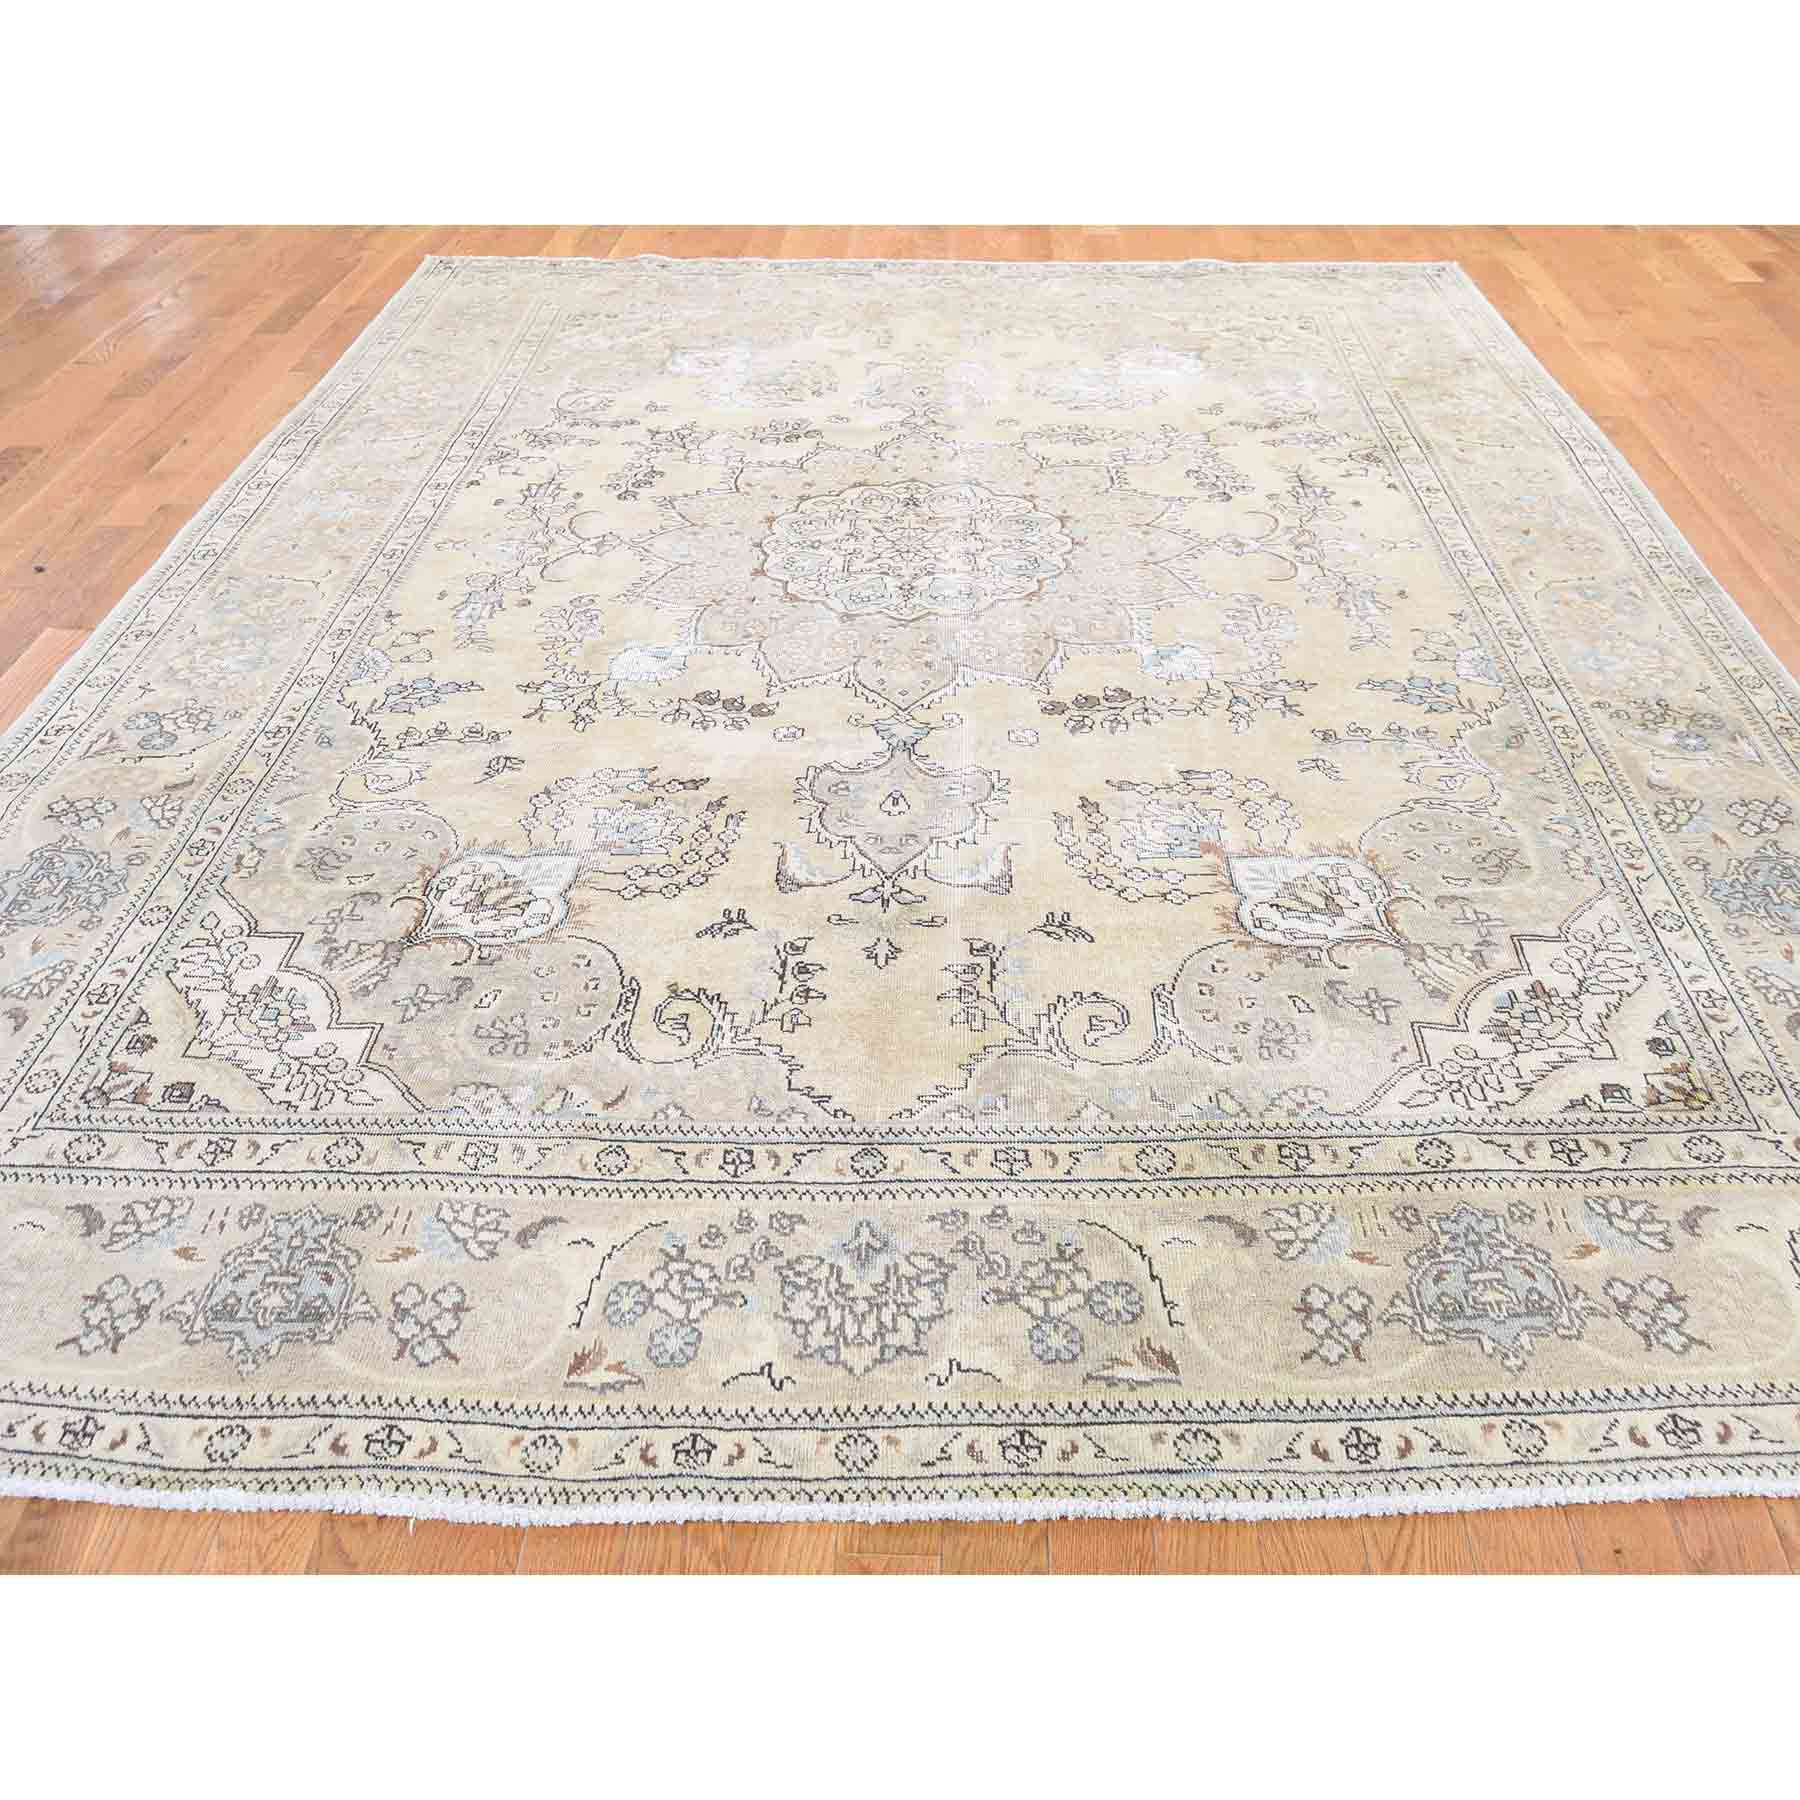 Overdyed-Vintage-Hand-Knotted-Rug-211575